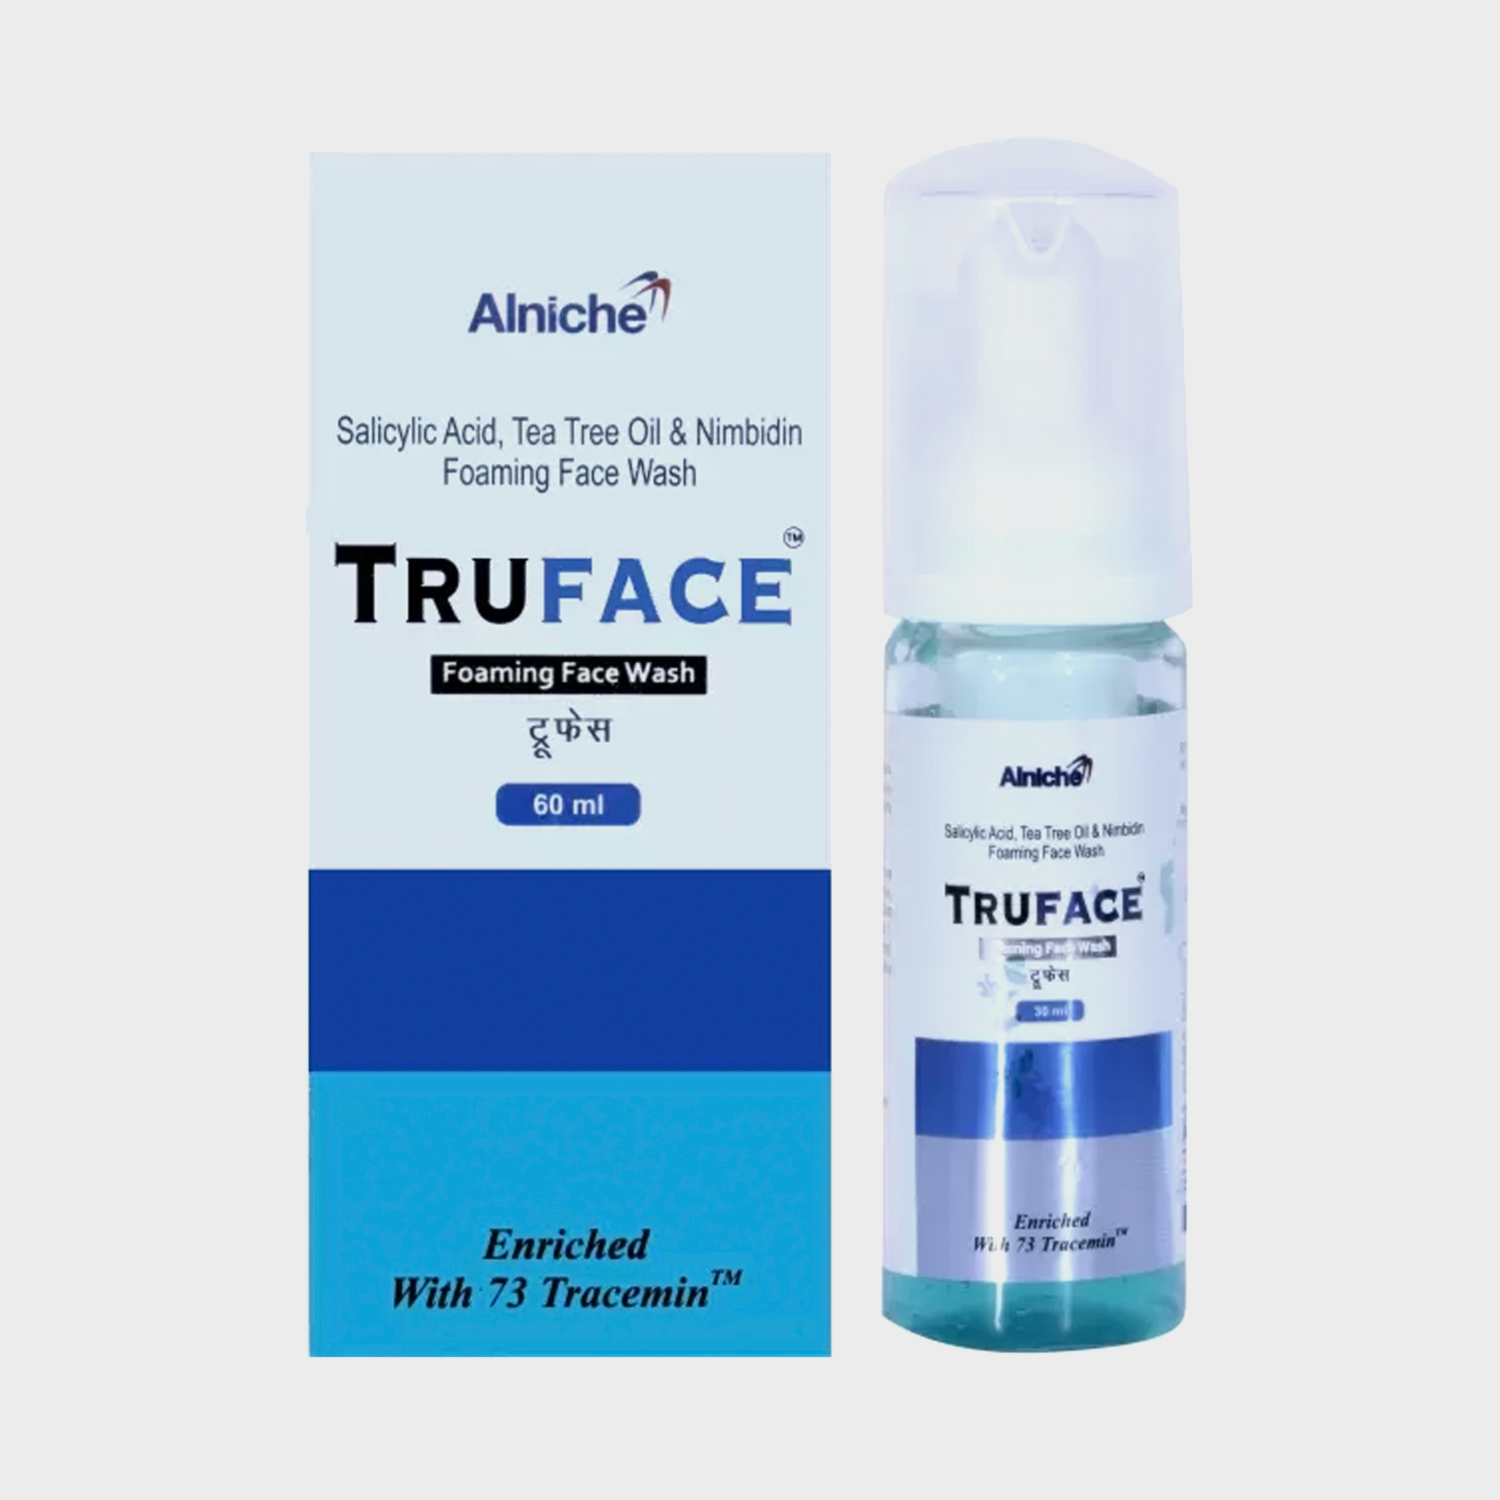 Title: Truface Foaming Face Wash buy online at best price in India - Cureka